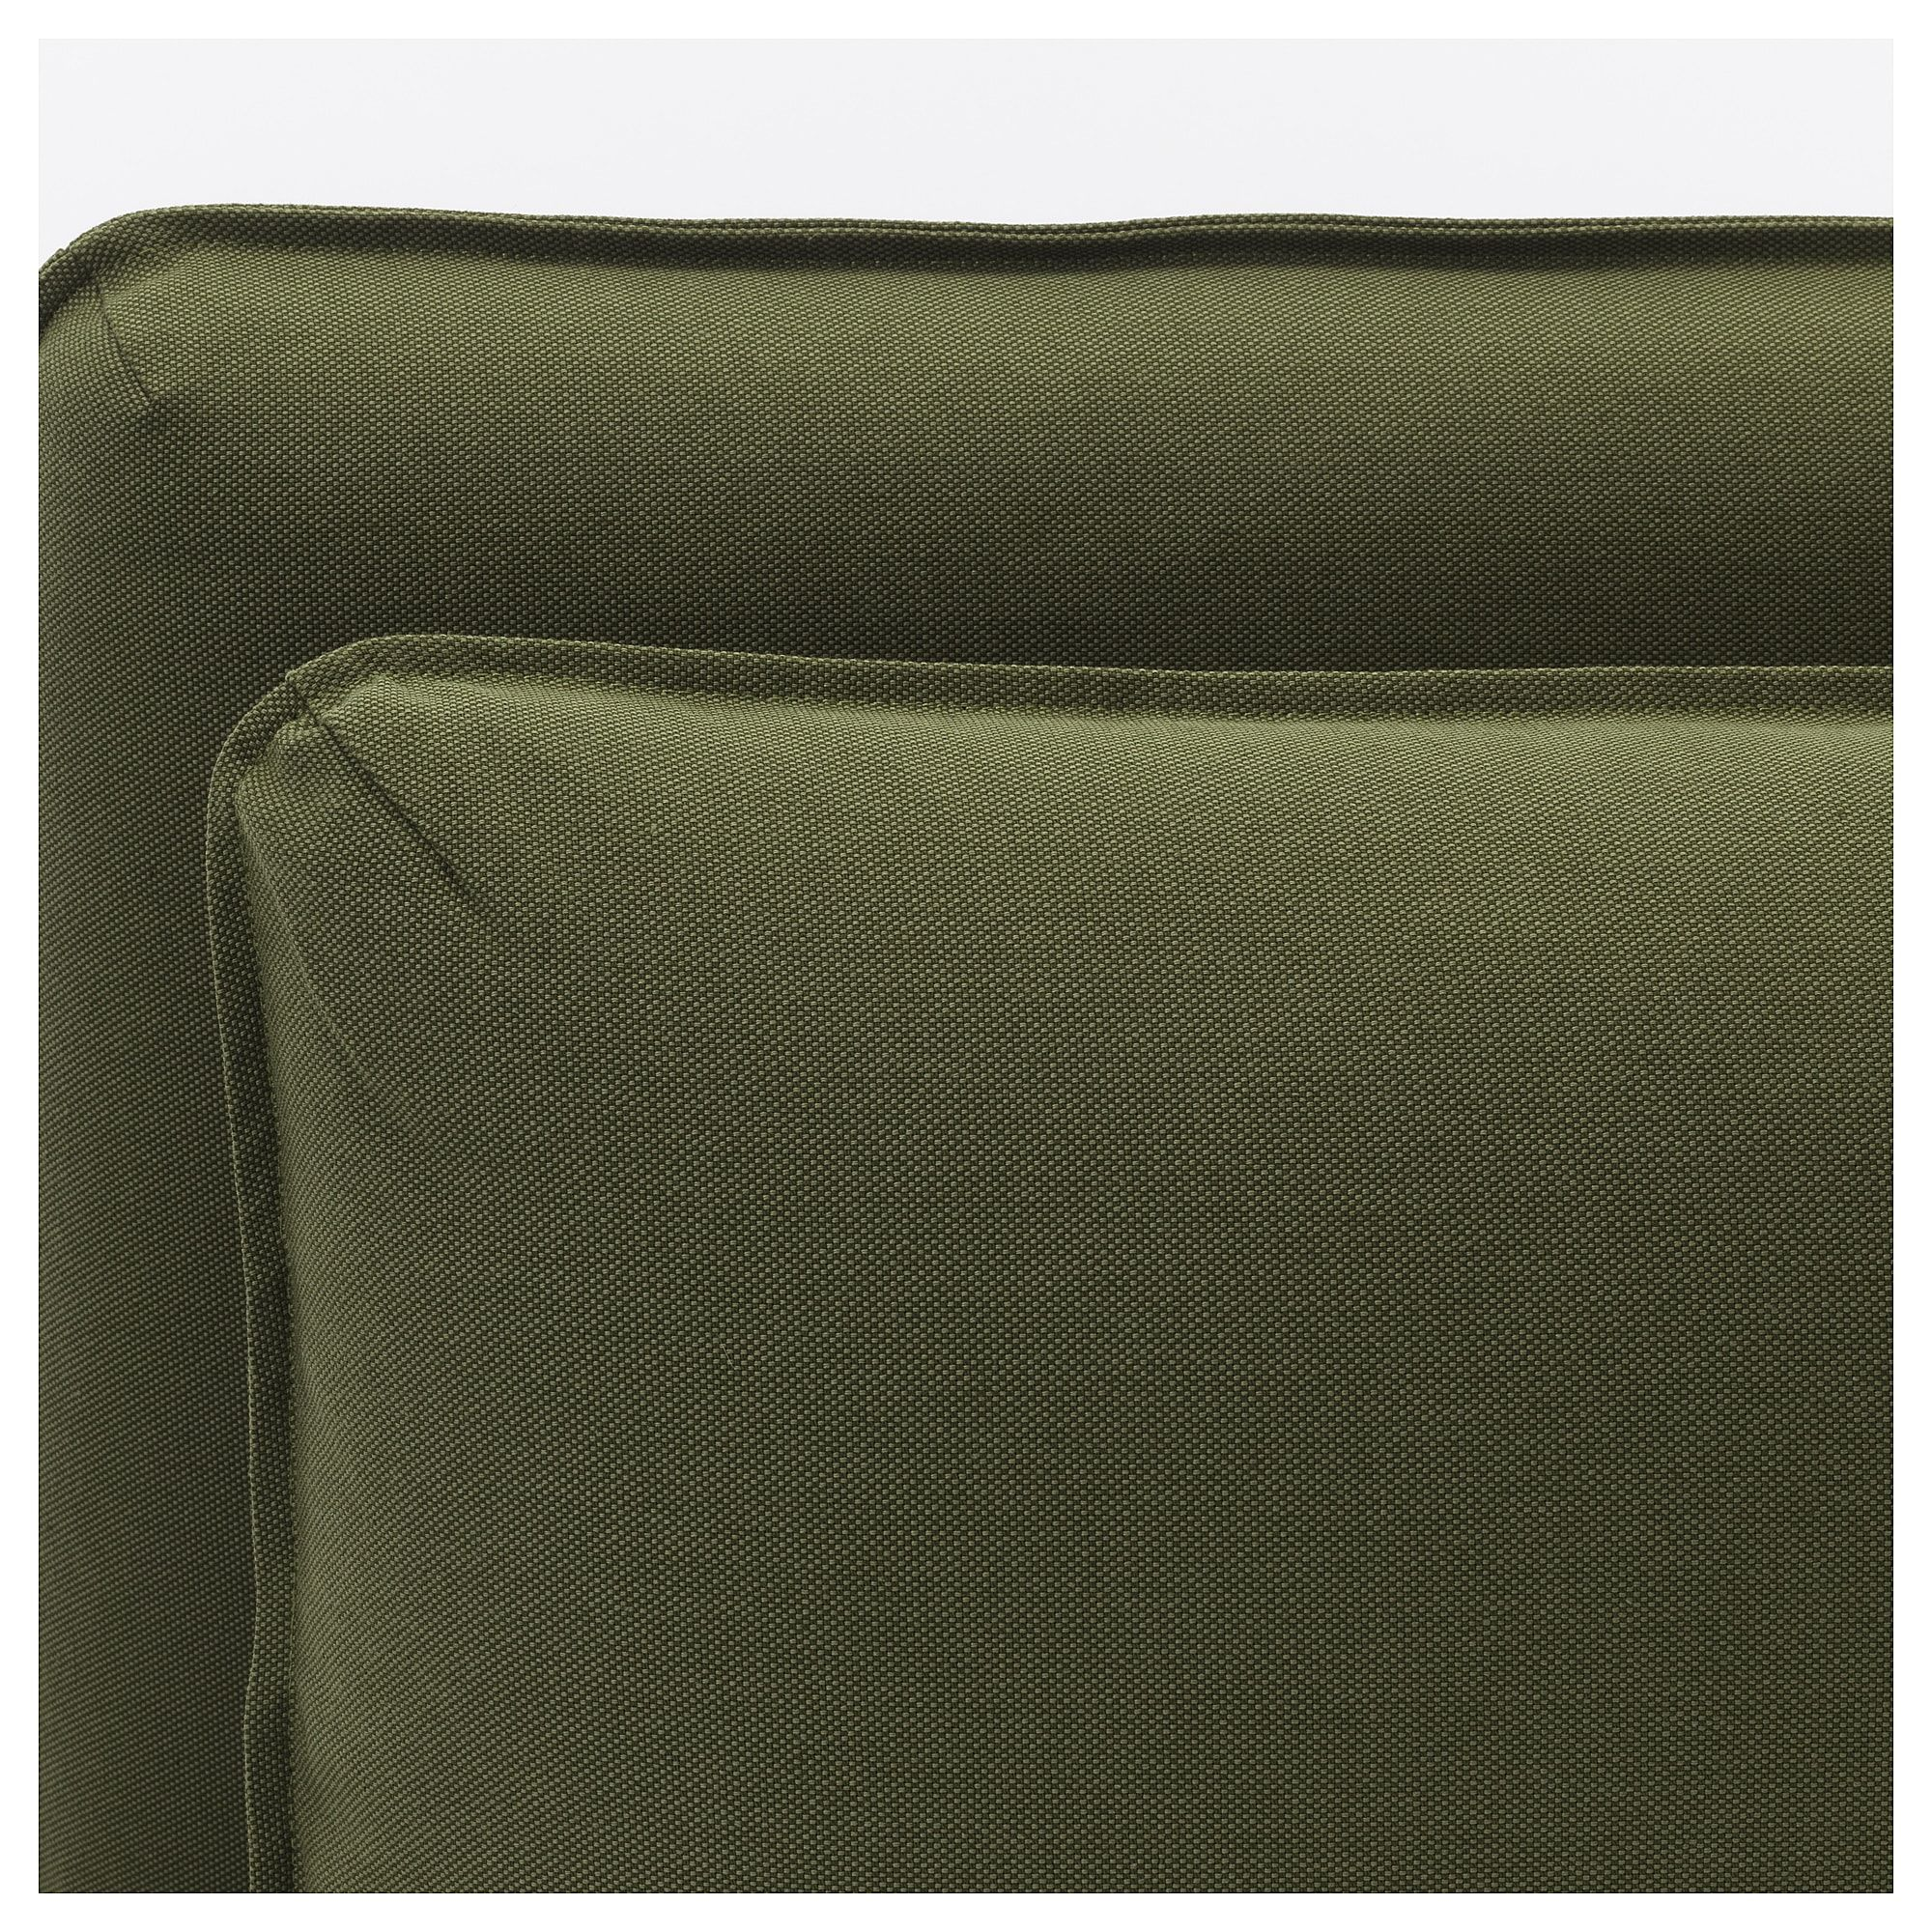 Fabulous Ikea Vallentuna Orrsta Olive Green Sectional 1 Seat Lamtechconsult Wood Chair Design Ideas Lamtechconsultcom